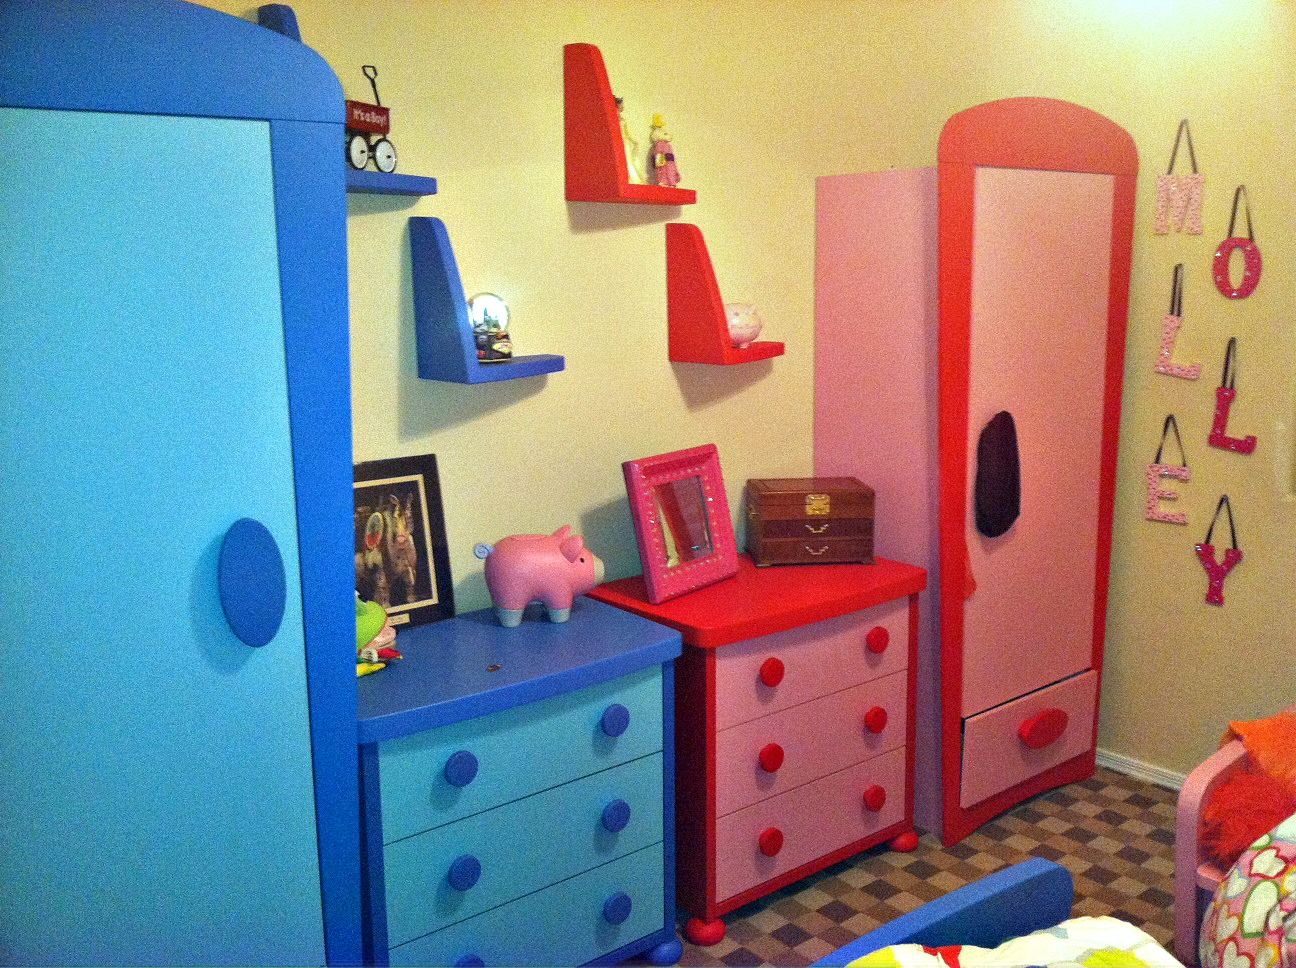 Stunning Ikea Kids Room Reflects Cheerful Character With Colorful